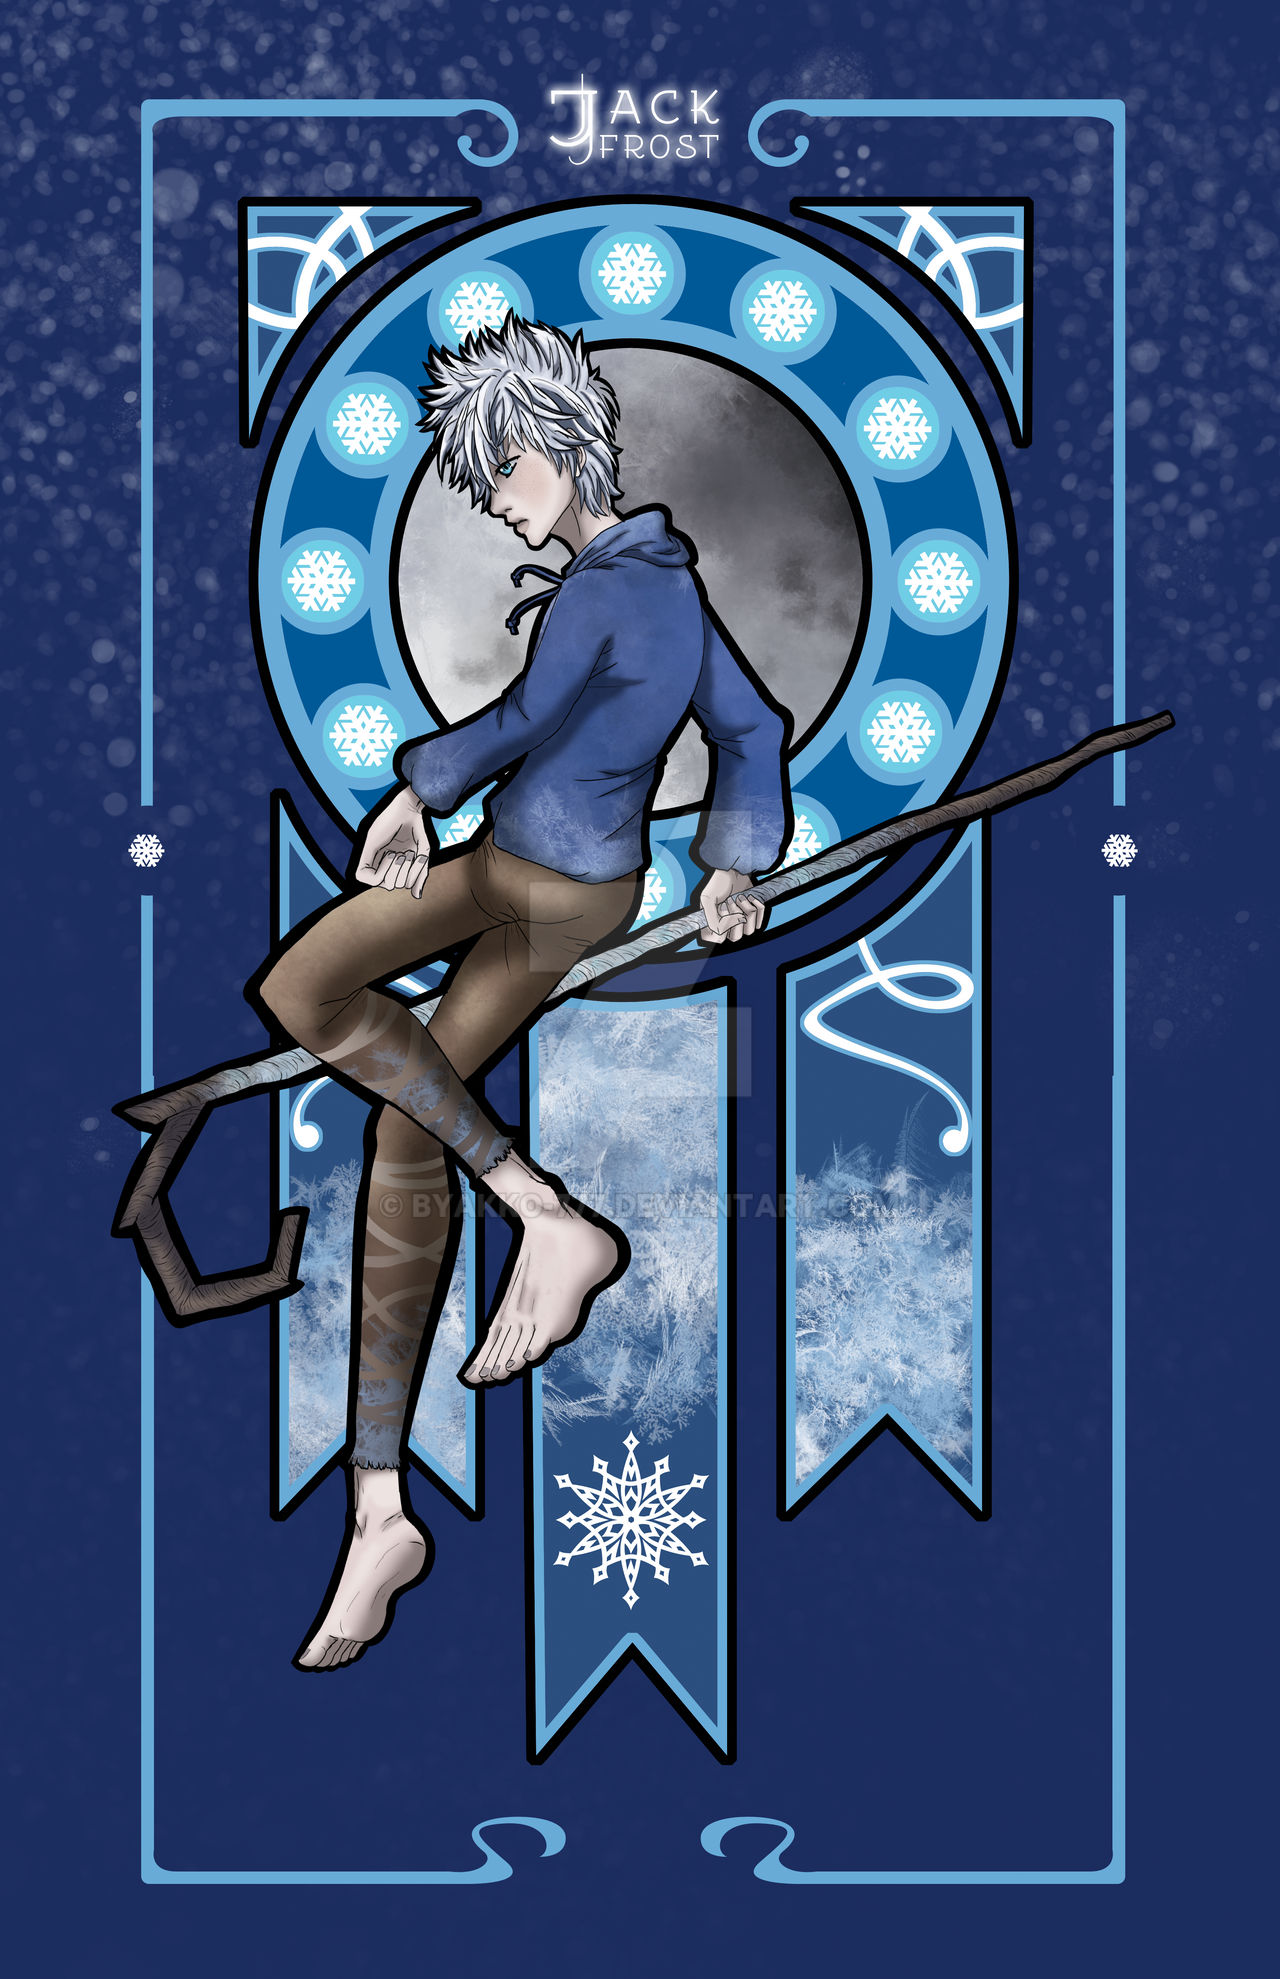 Jack Frost Nouveau By Byakko 777 On Deviantart